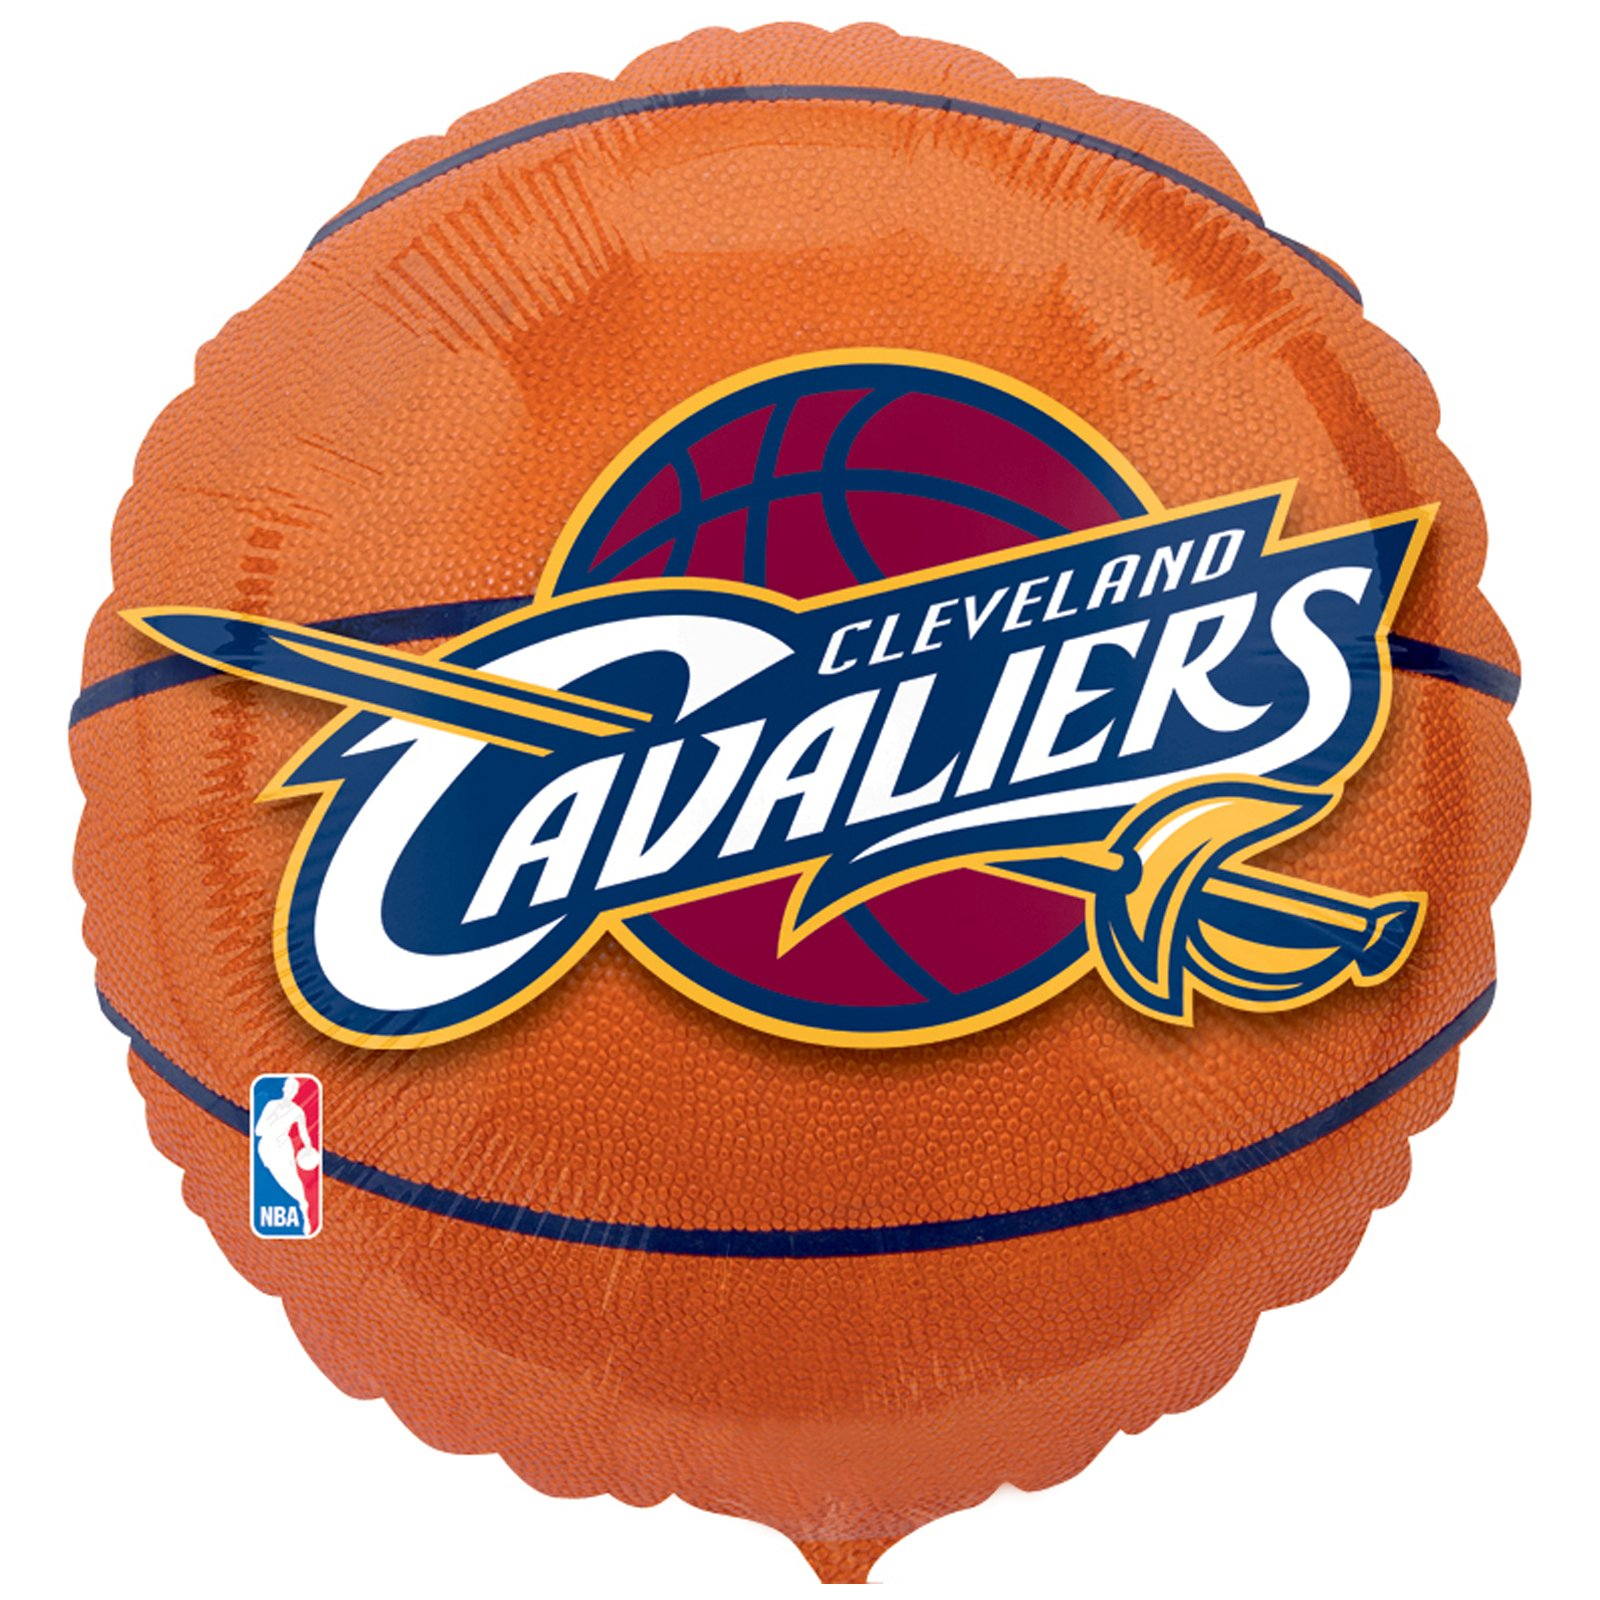 Cleveland Cavaliers Basketball - Foil Balloon